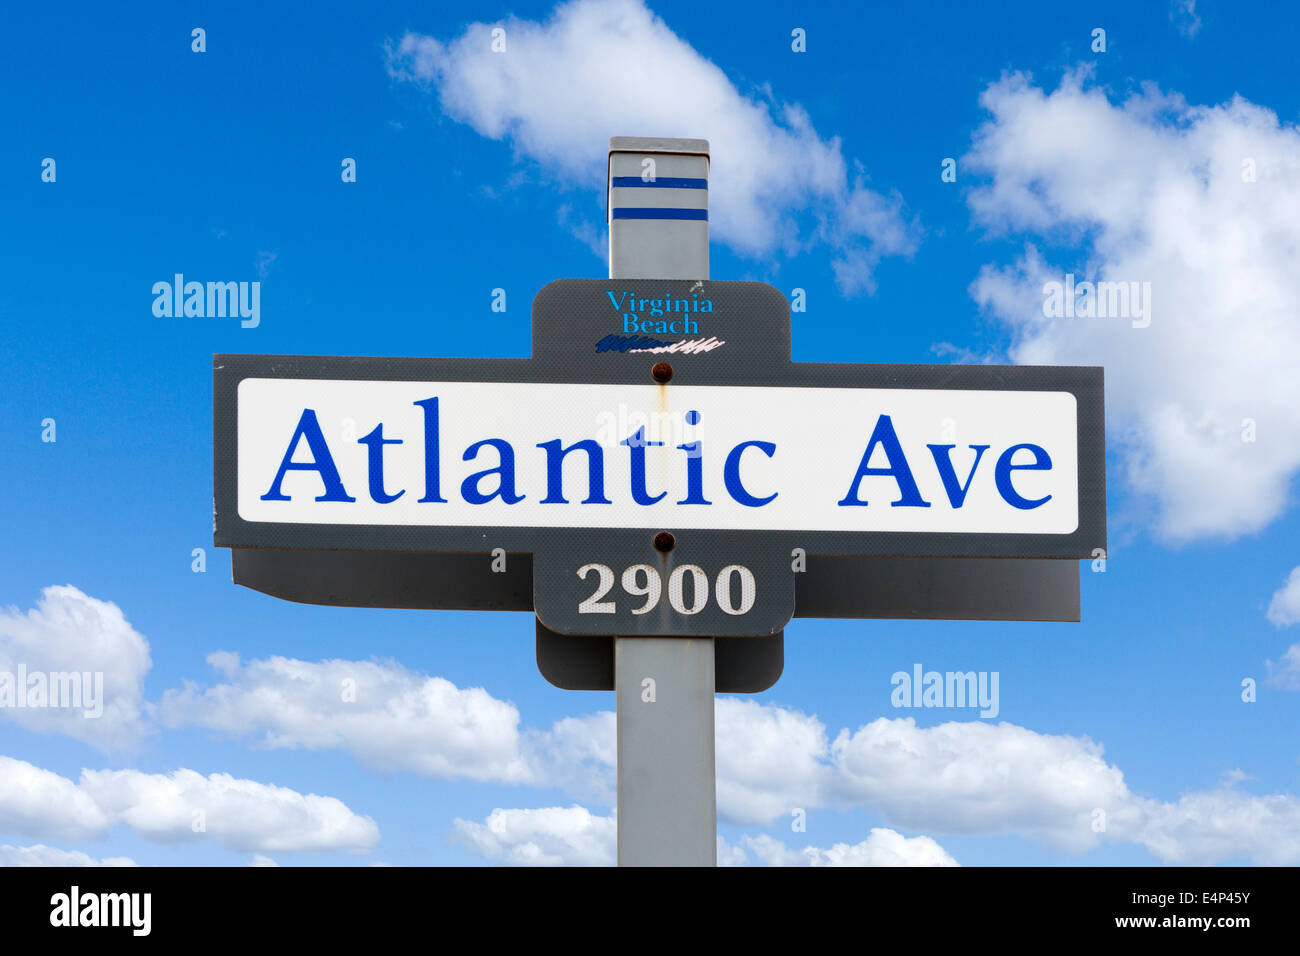 Atlantic Avenue Straßenschild in Virginia Beach, Virginia, USA Stockbild